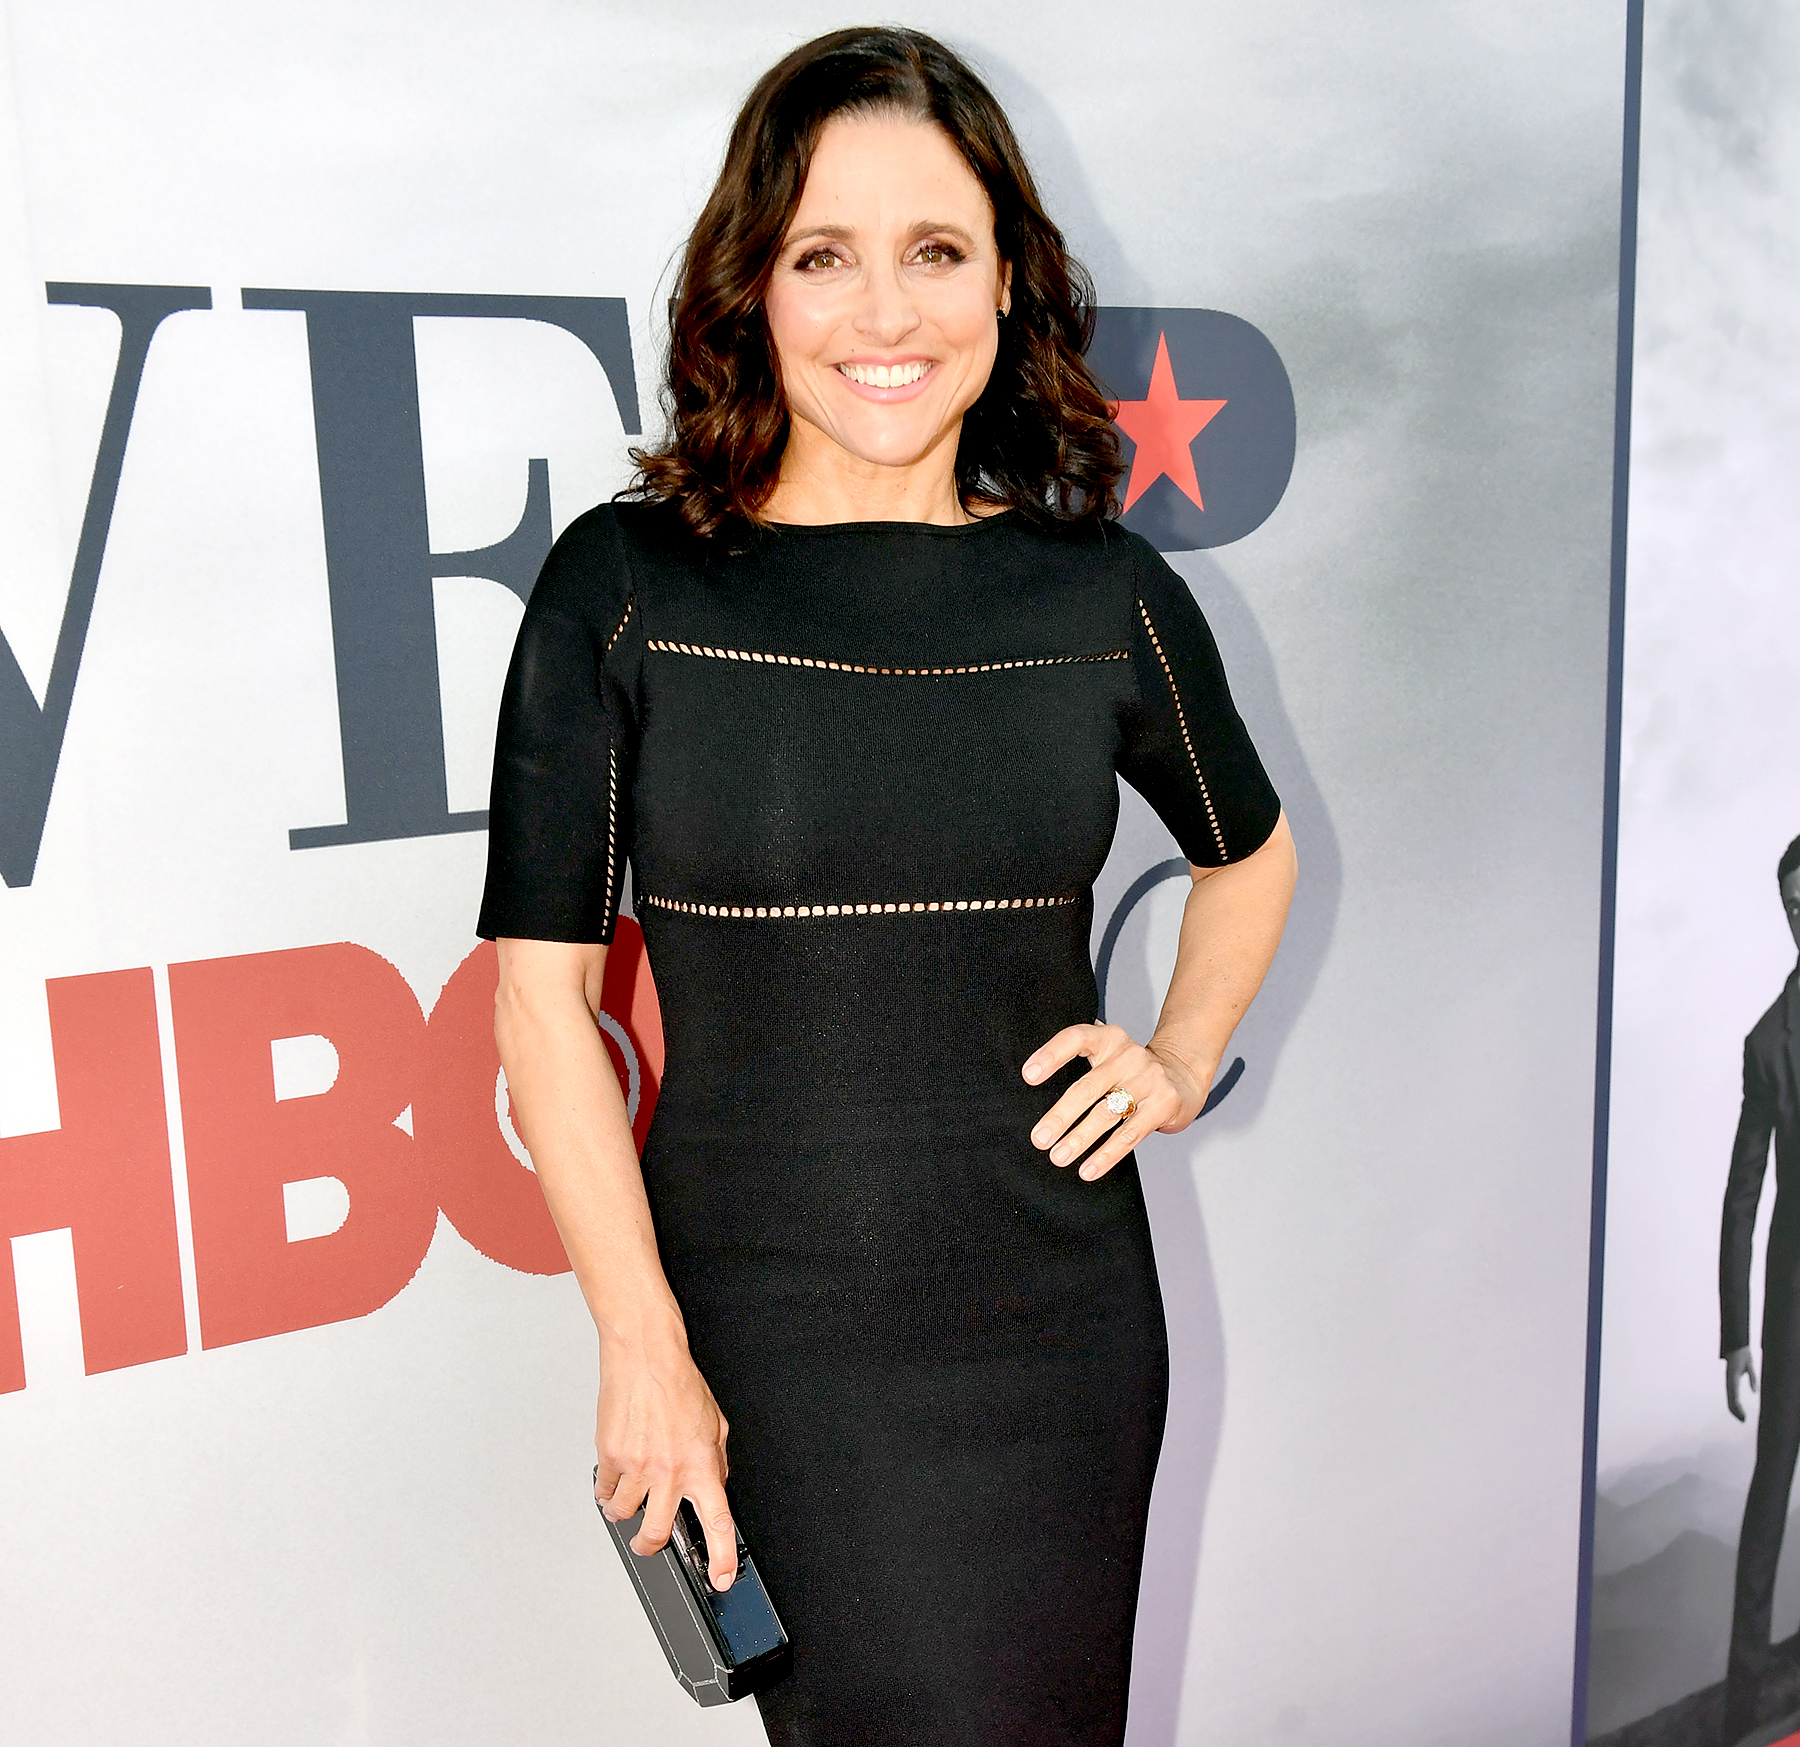 Julia Louis-Dreyfus Tells Cancer